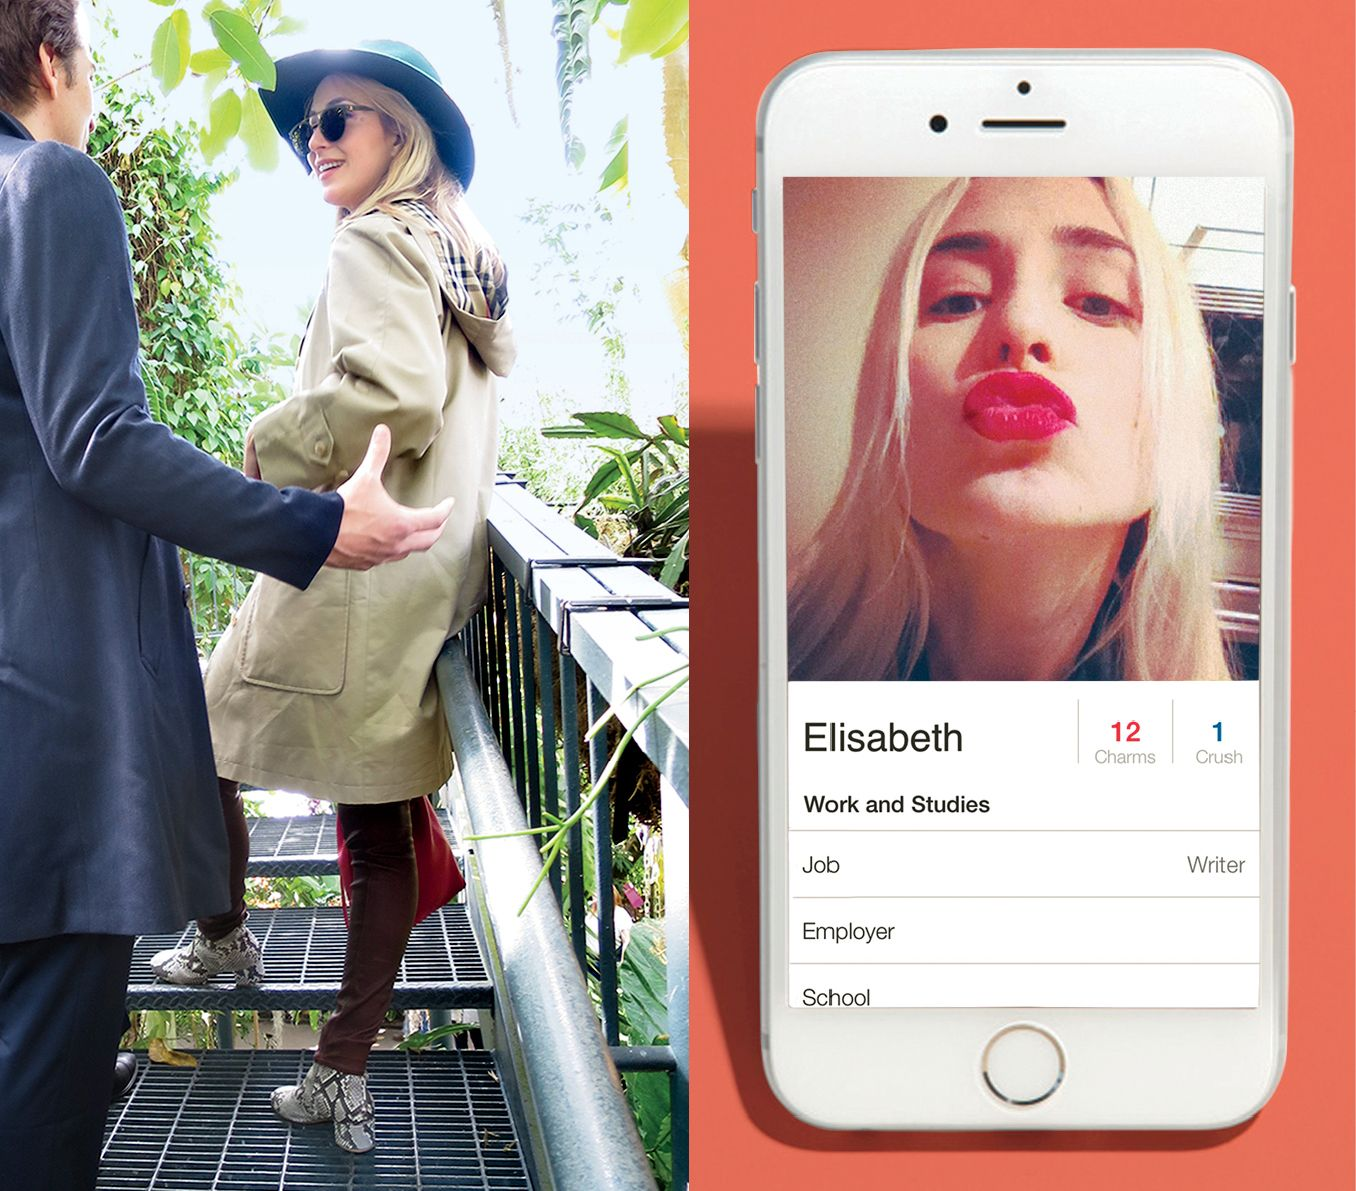 One Vogue Editor Tries Her Hand at Tinder, Bumble, and